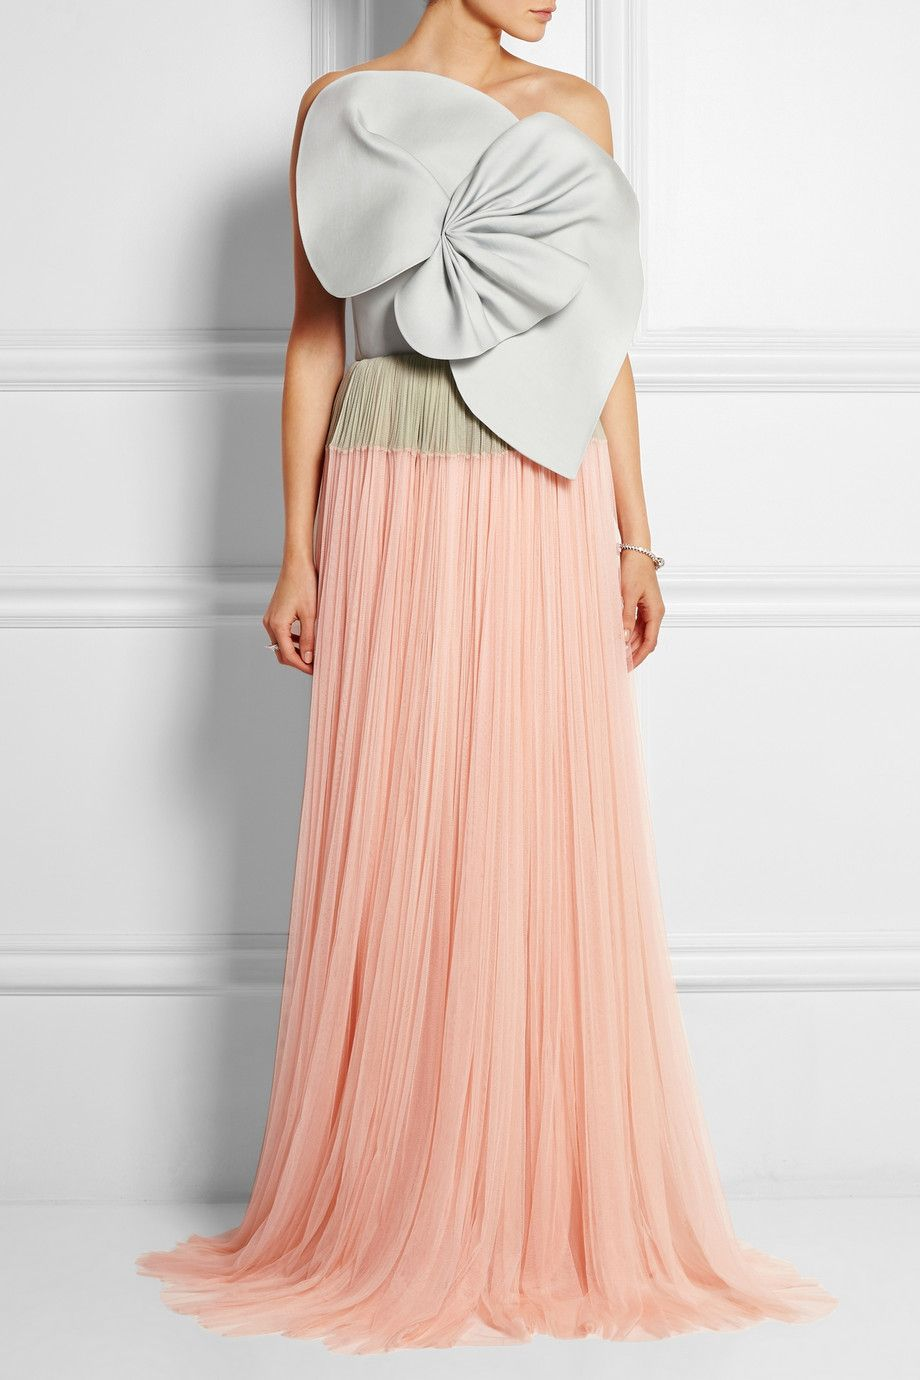 DELPOZO | Strapless twill and tulle gown | NET-A-PORTER.COM DELPOZO Strapless twill and tulle gown $11,050